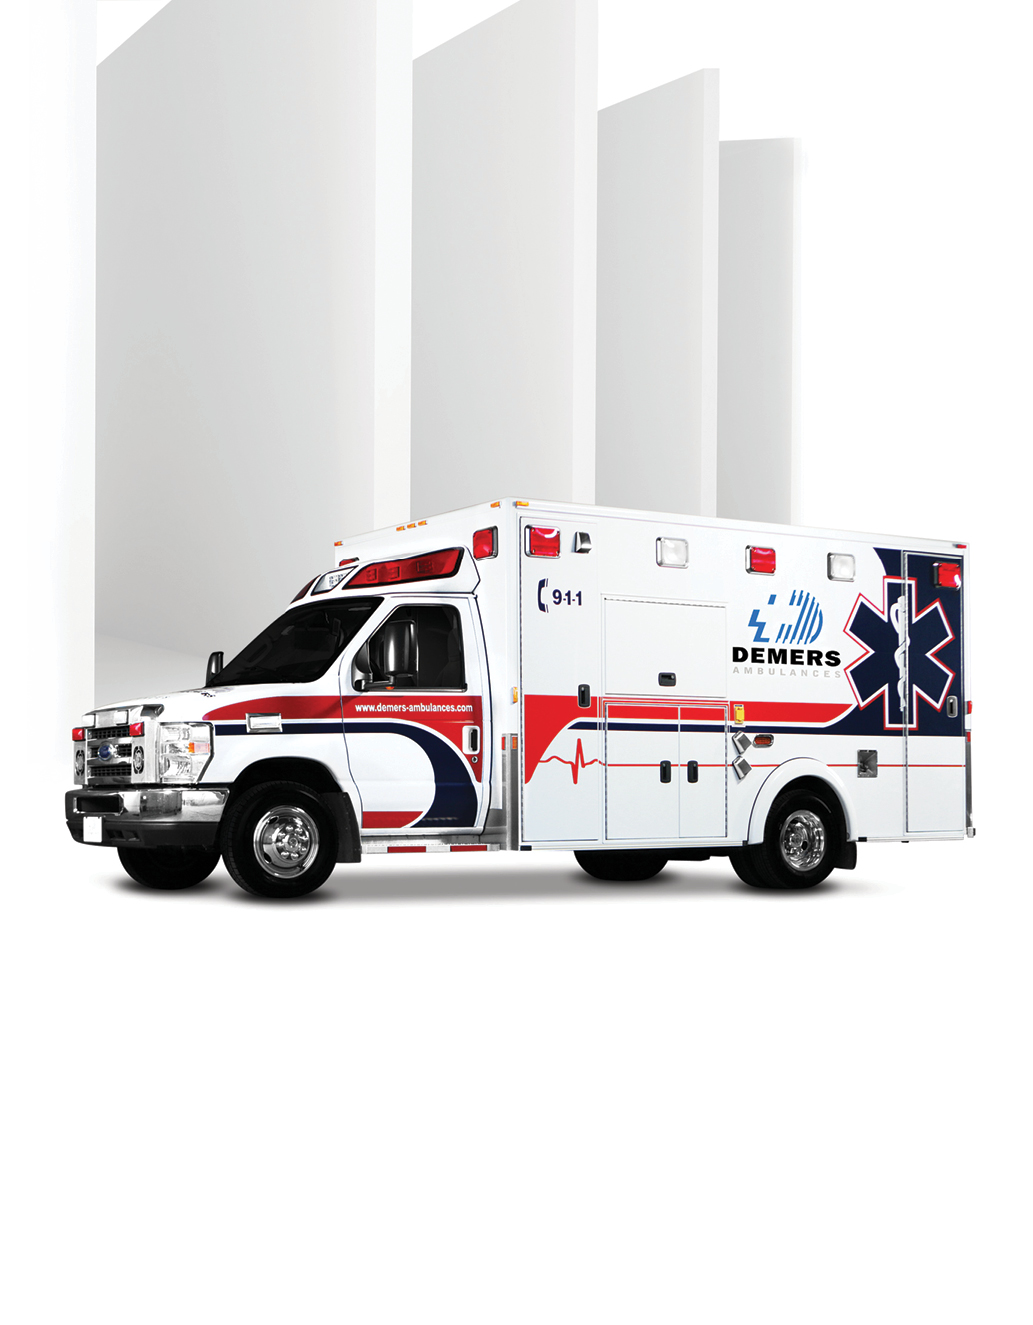 Demers_Ambulances_255539521